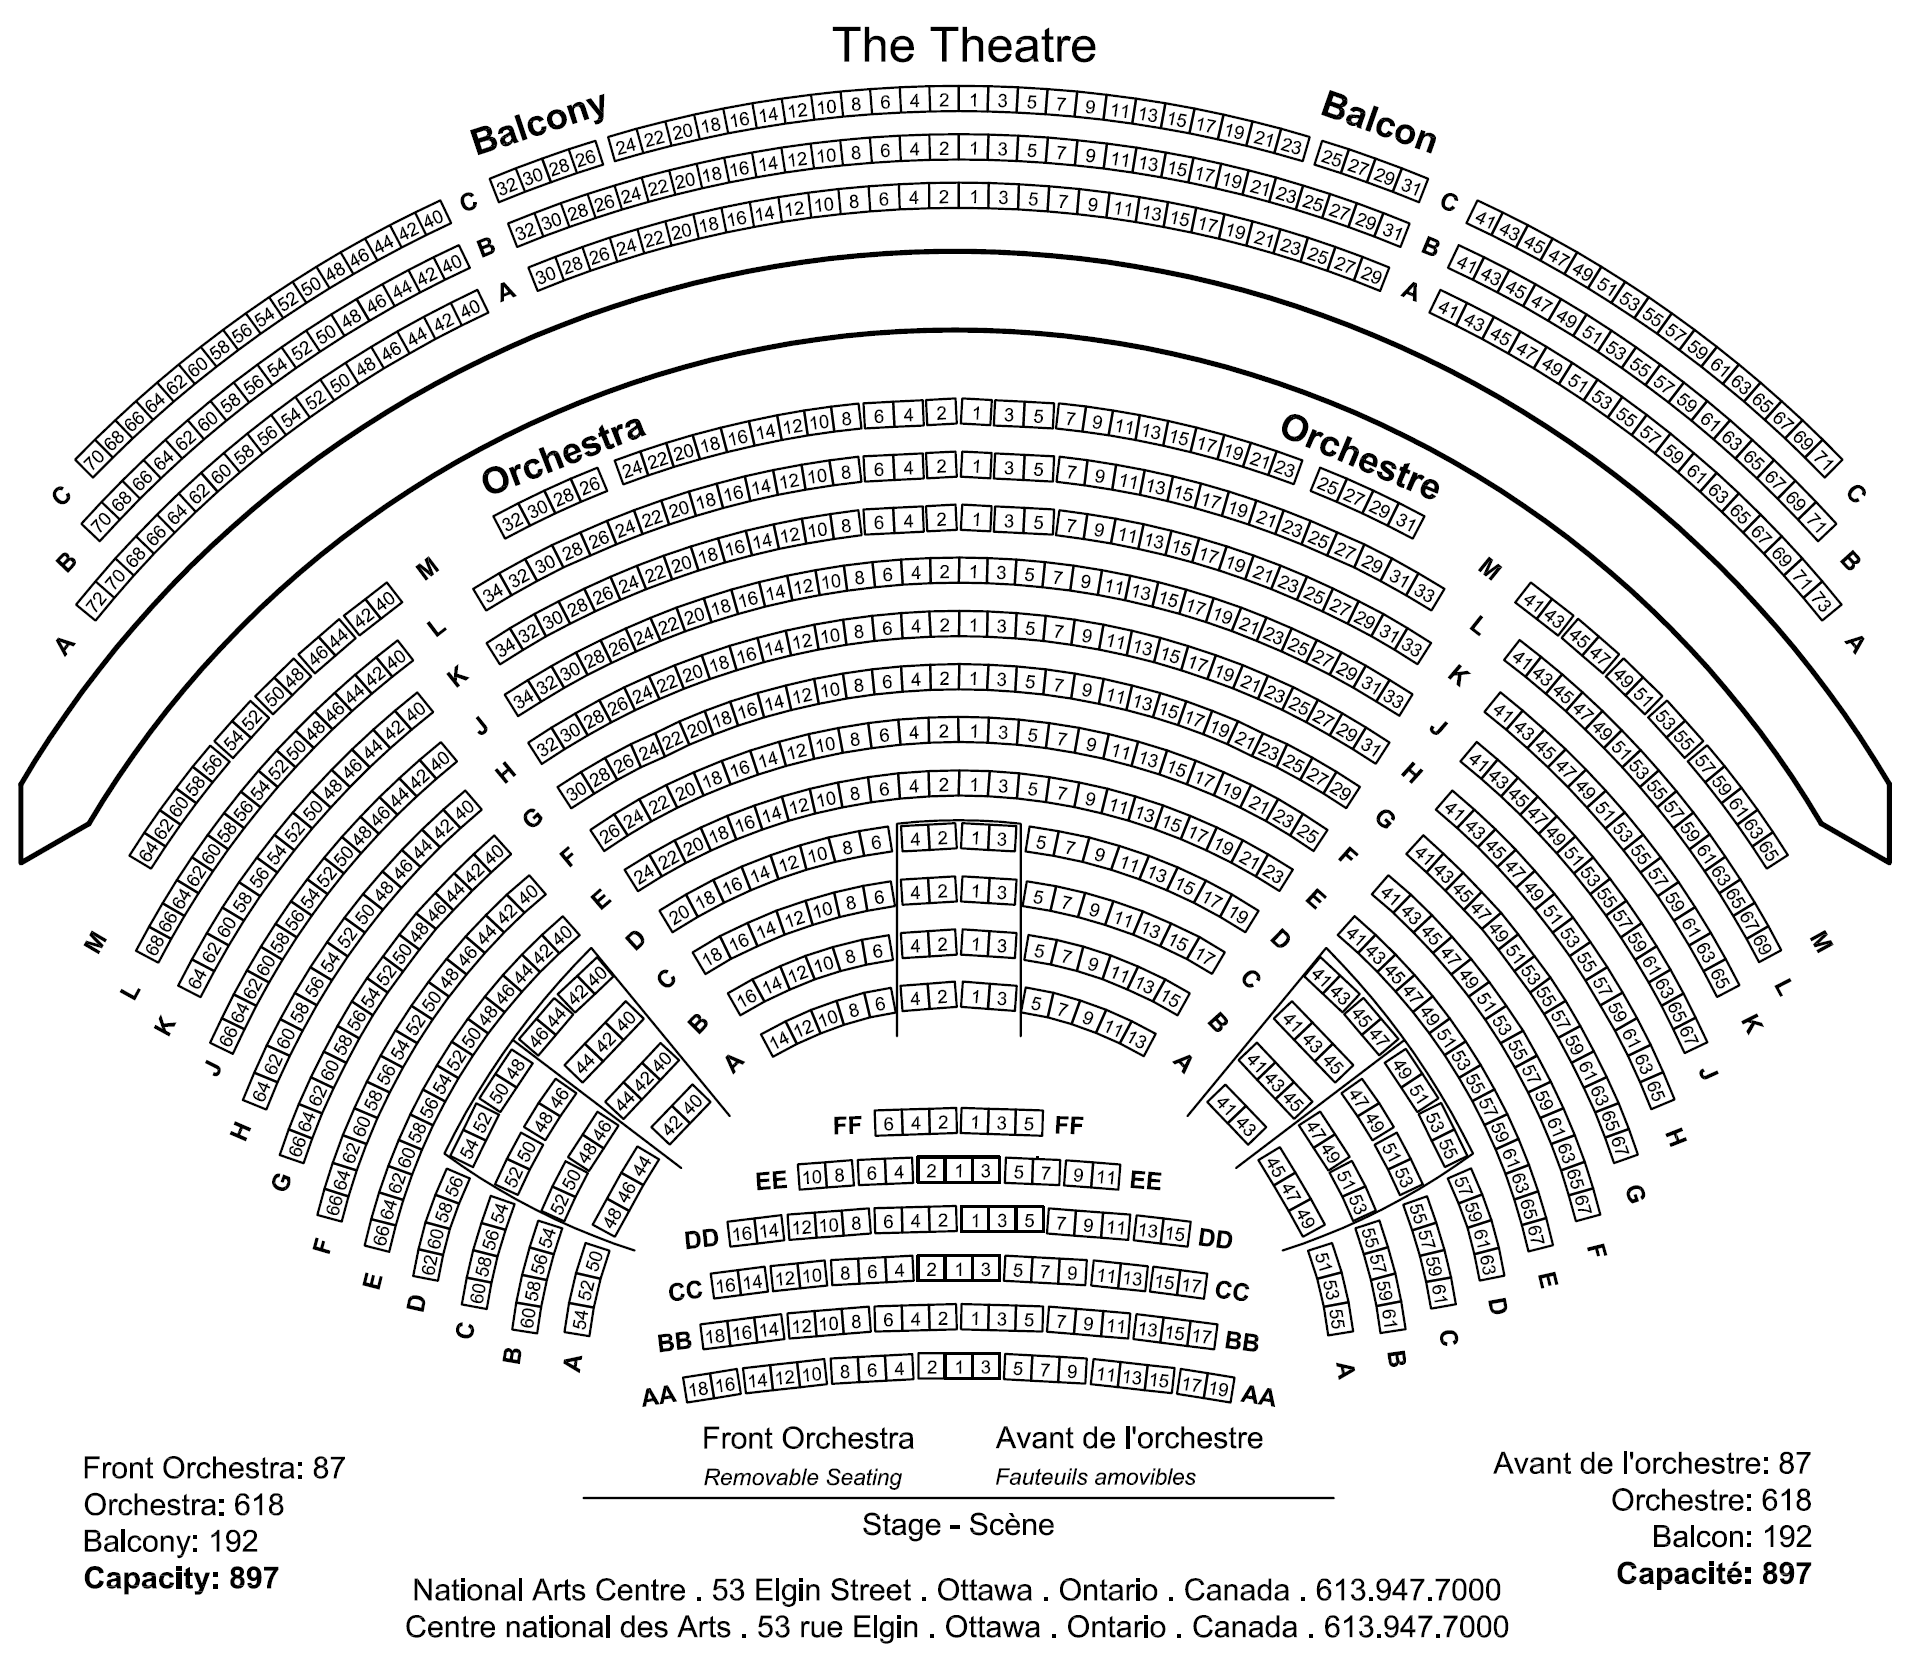 Theatre Tickets And The Nac Michael Holtstrom